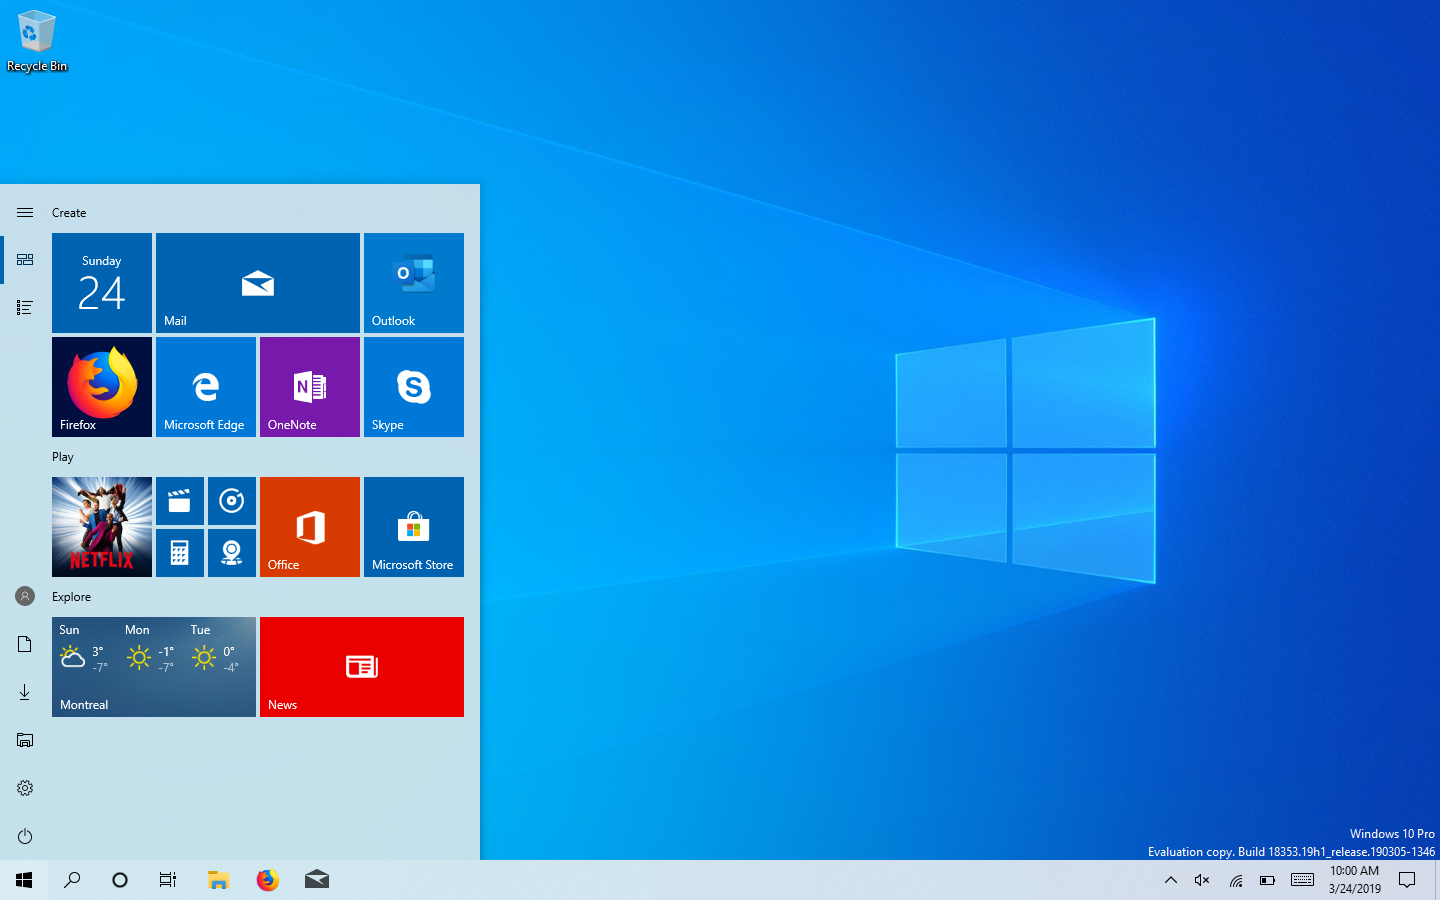 Windows 10 May 2019 Update - Here is everything you need to know